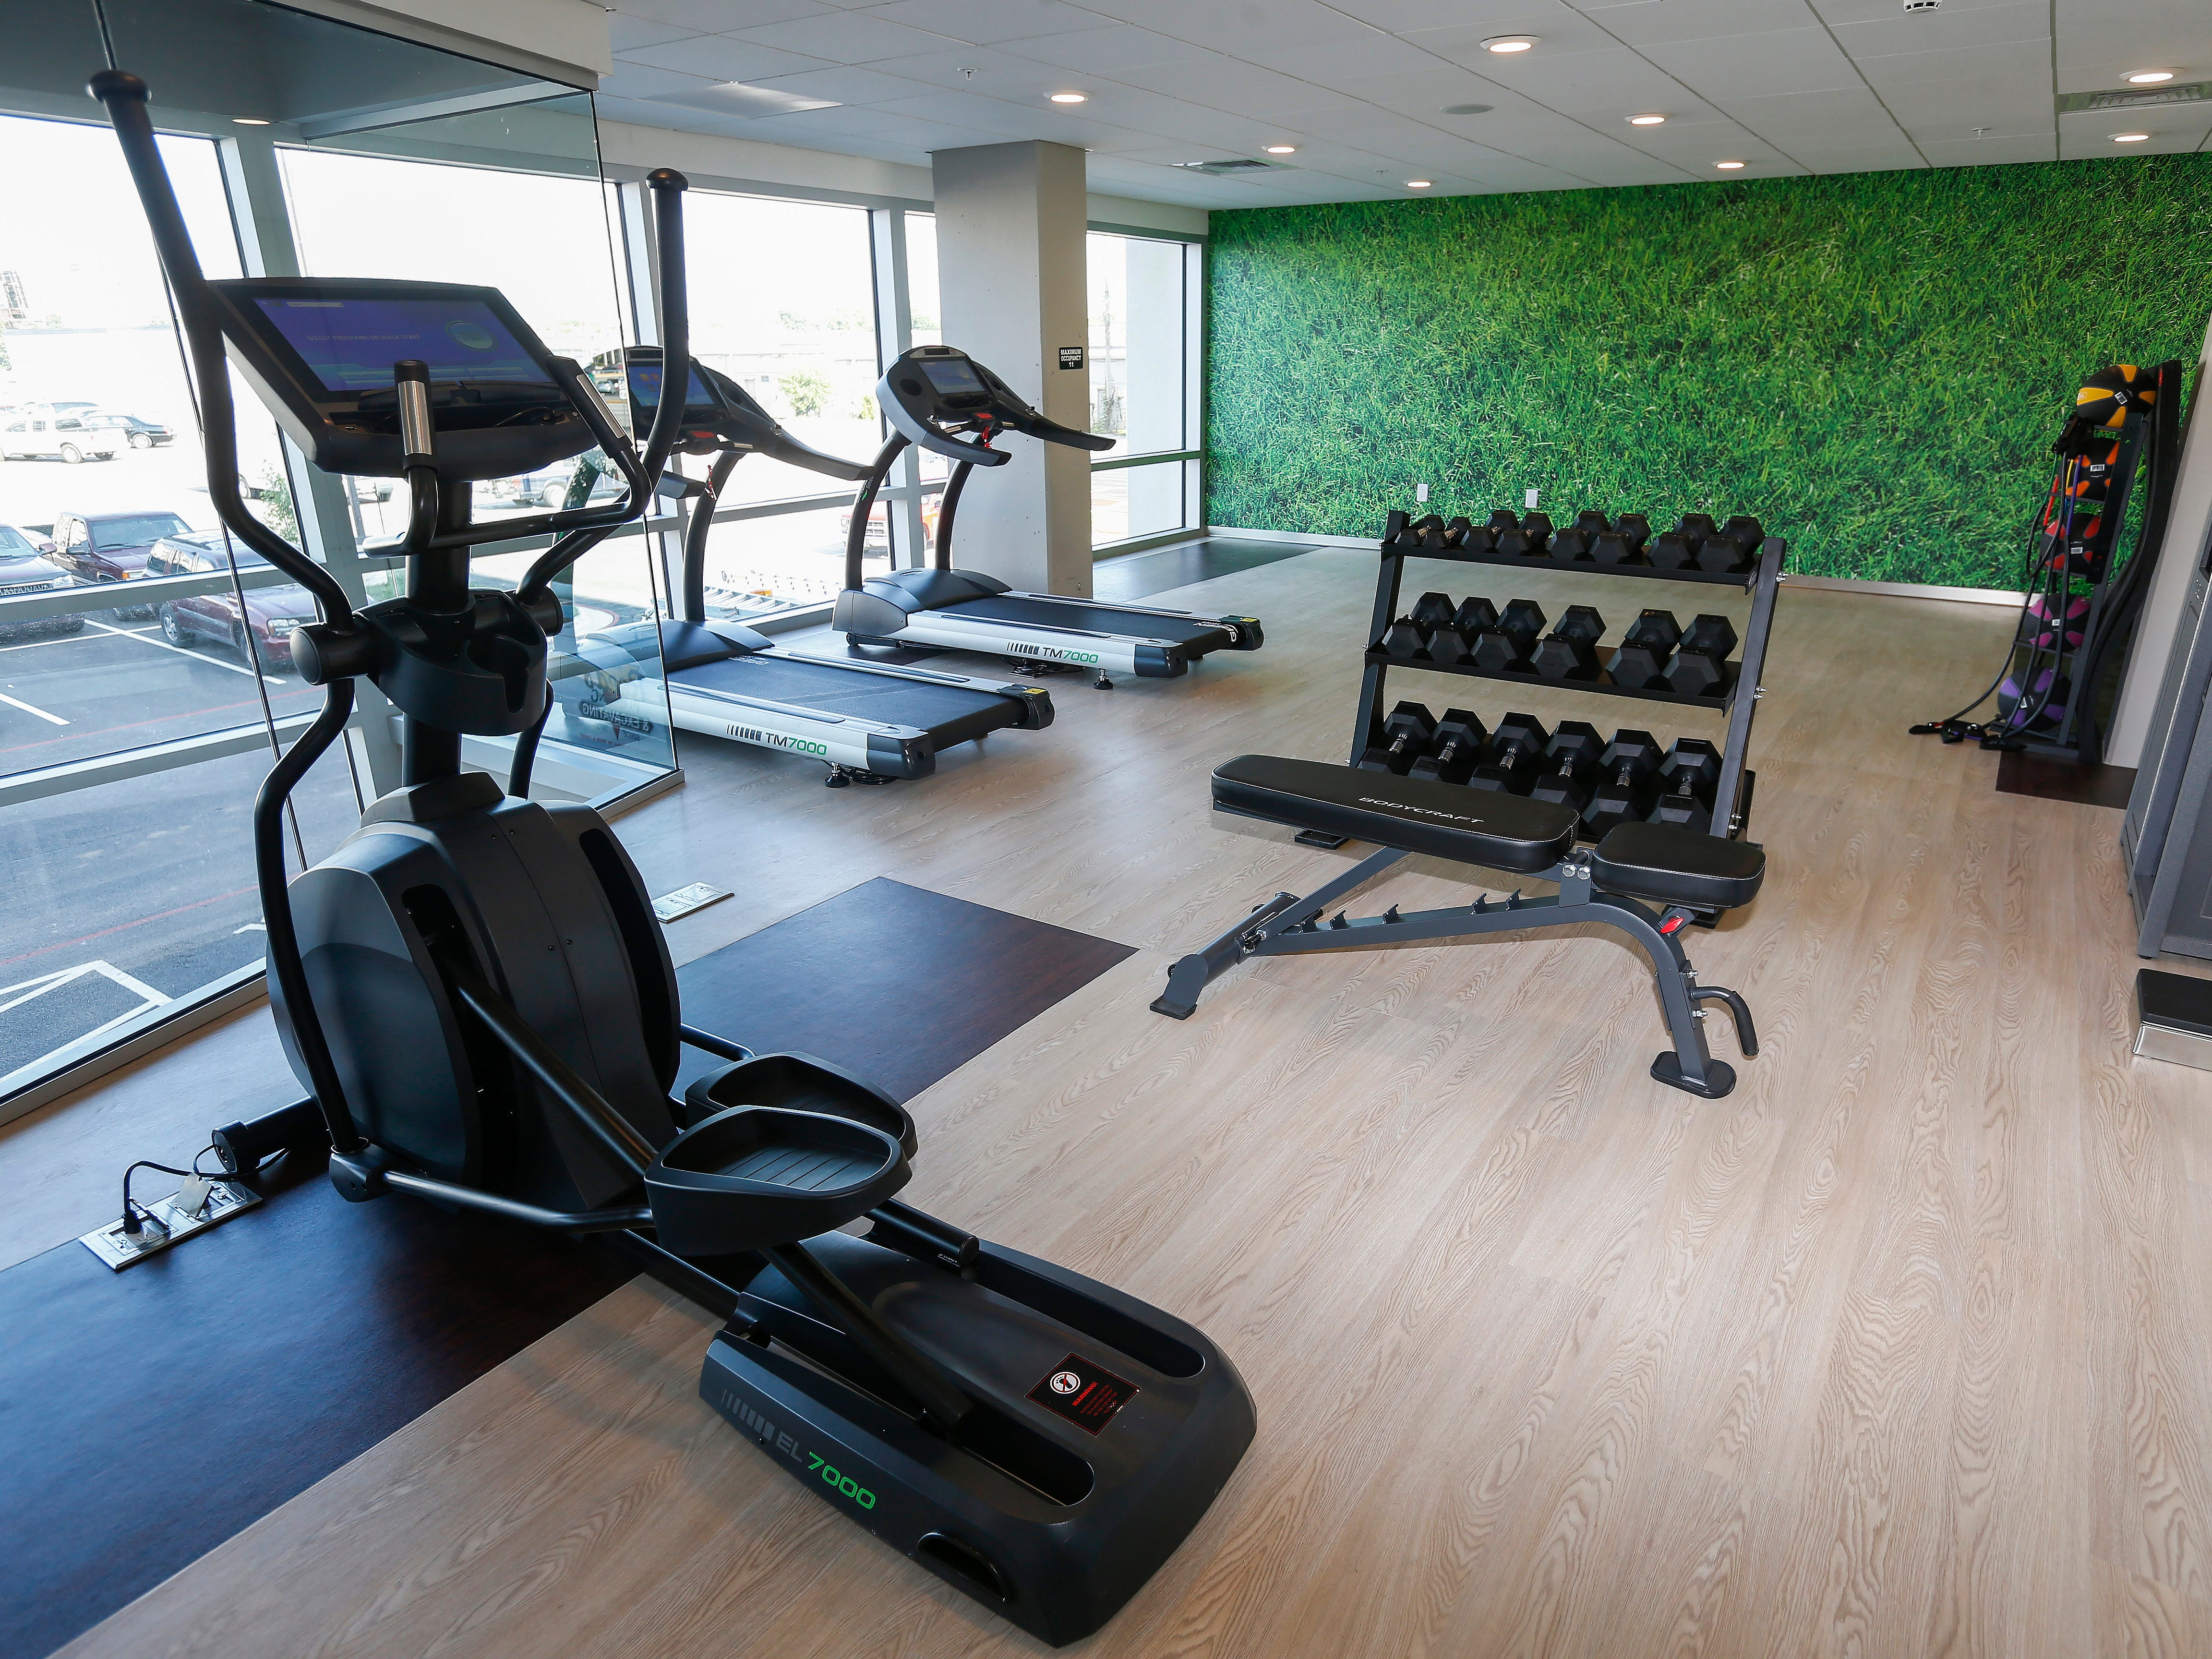 A look at the fitness center at the new Vib Hotel, located at 1845 E Sunshine St. The hotel will hold its grand opening on Friday, Aug. 10, 2018.